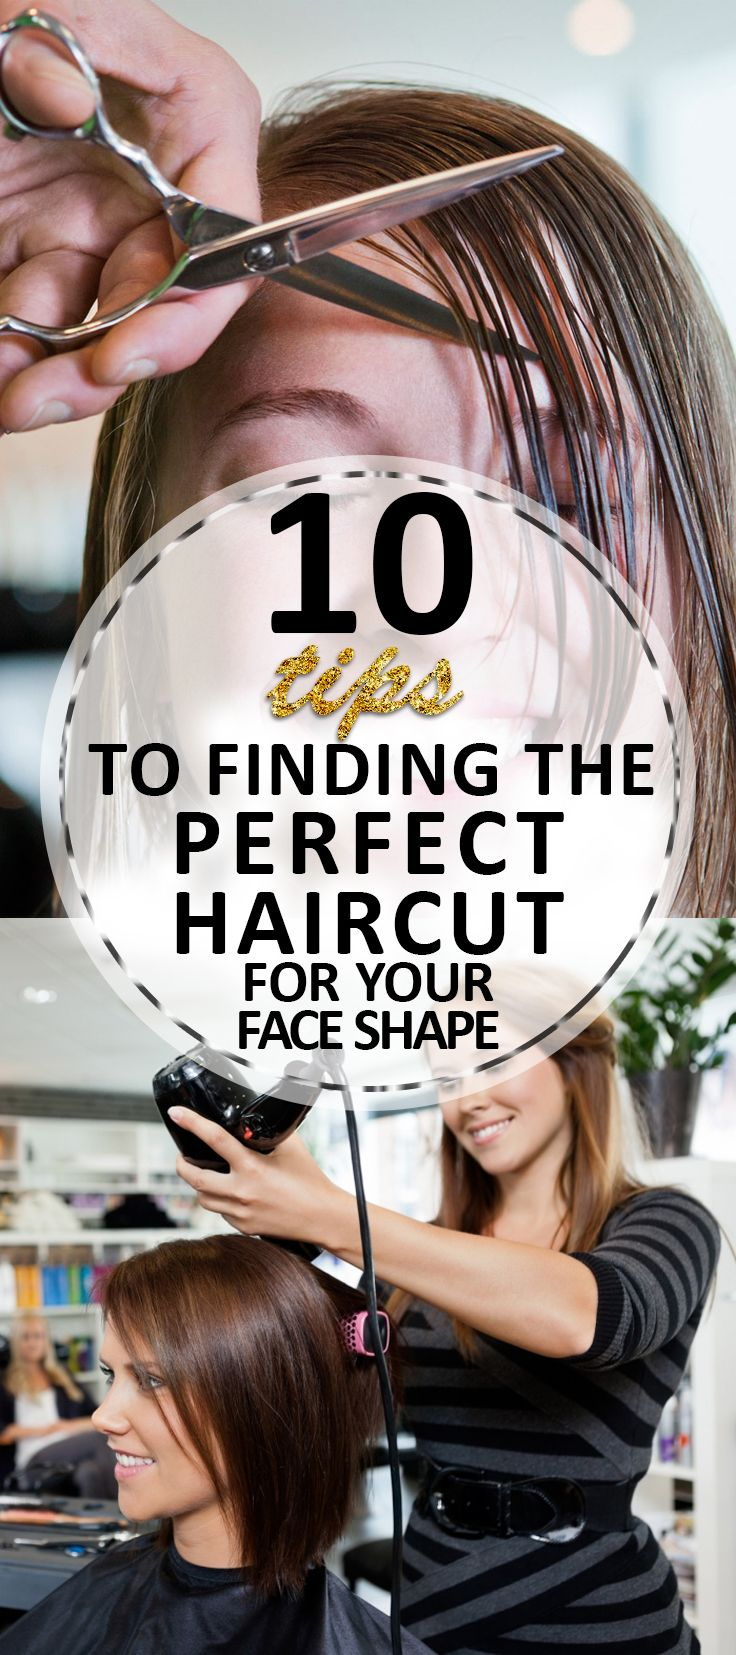 10 Tips To Finding The Perfect Haircut For Your Face Shape